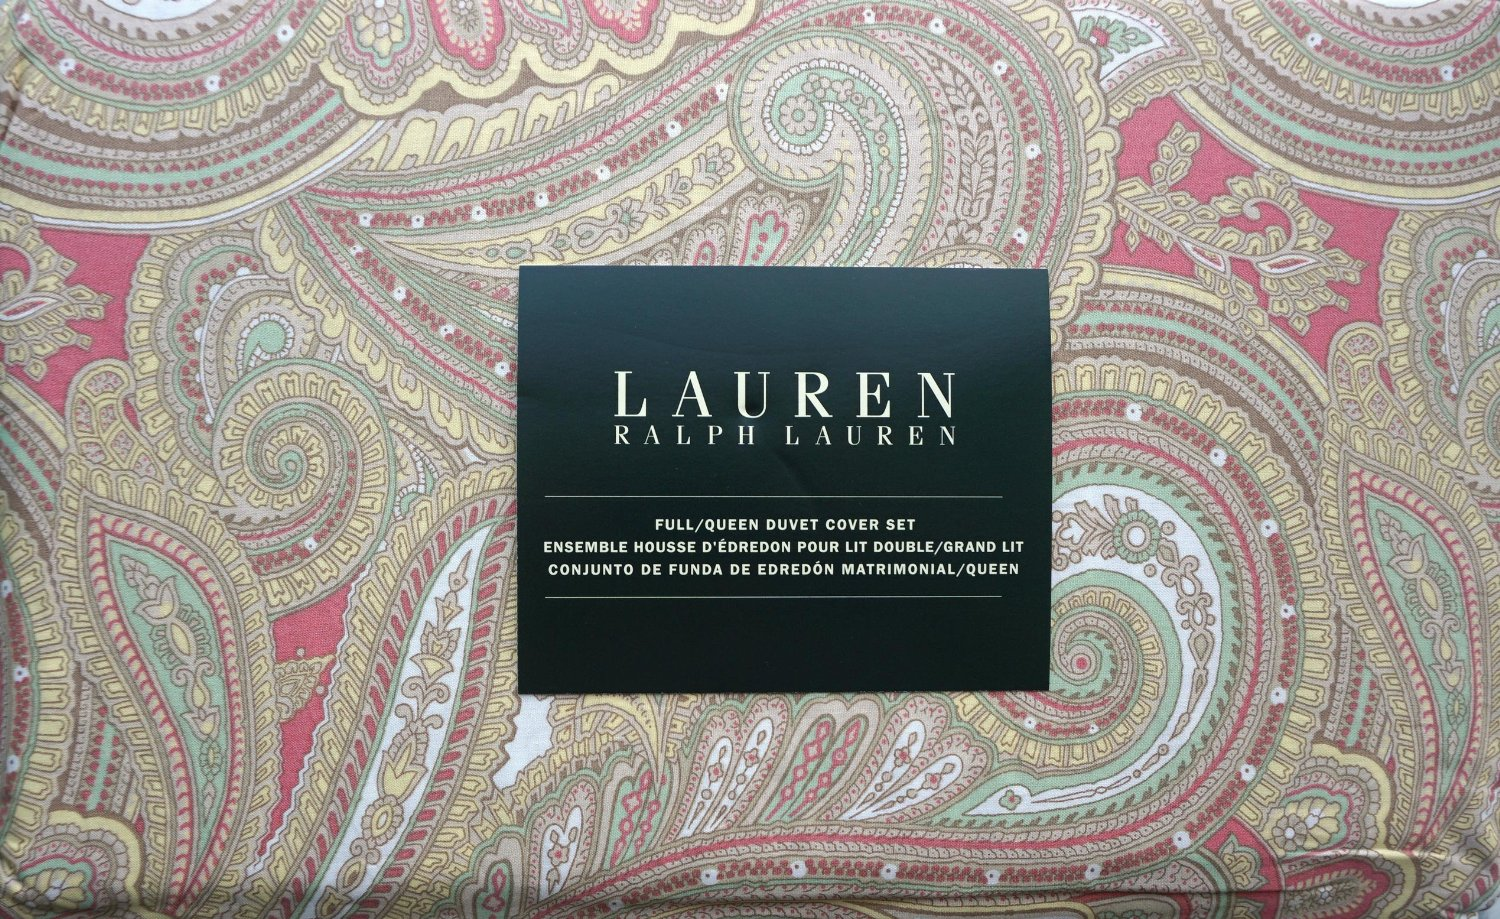 Lauren Ralph Lauren Bedding 3 Piece Full / Queen Size Duvet Cover Set Yellow Green Coral White Paisley Pattern